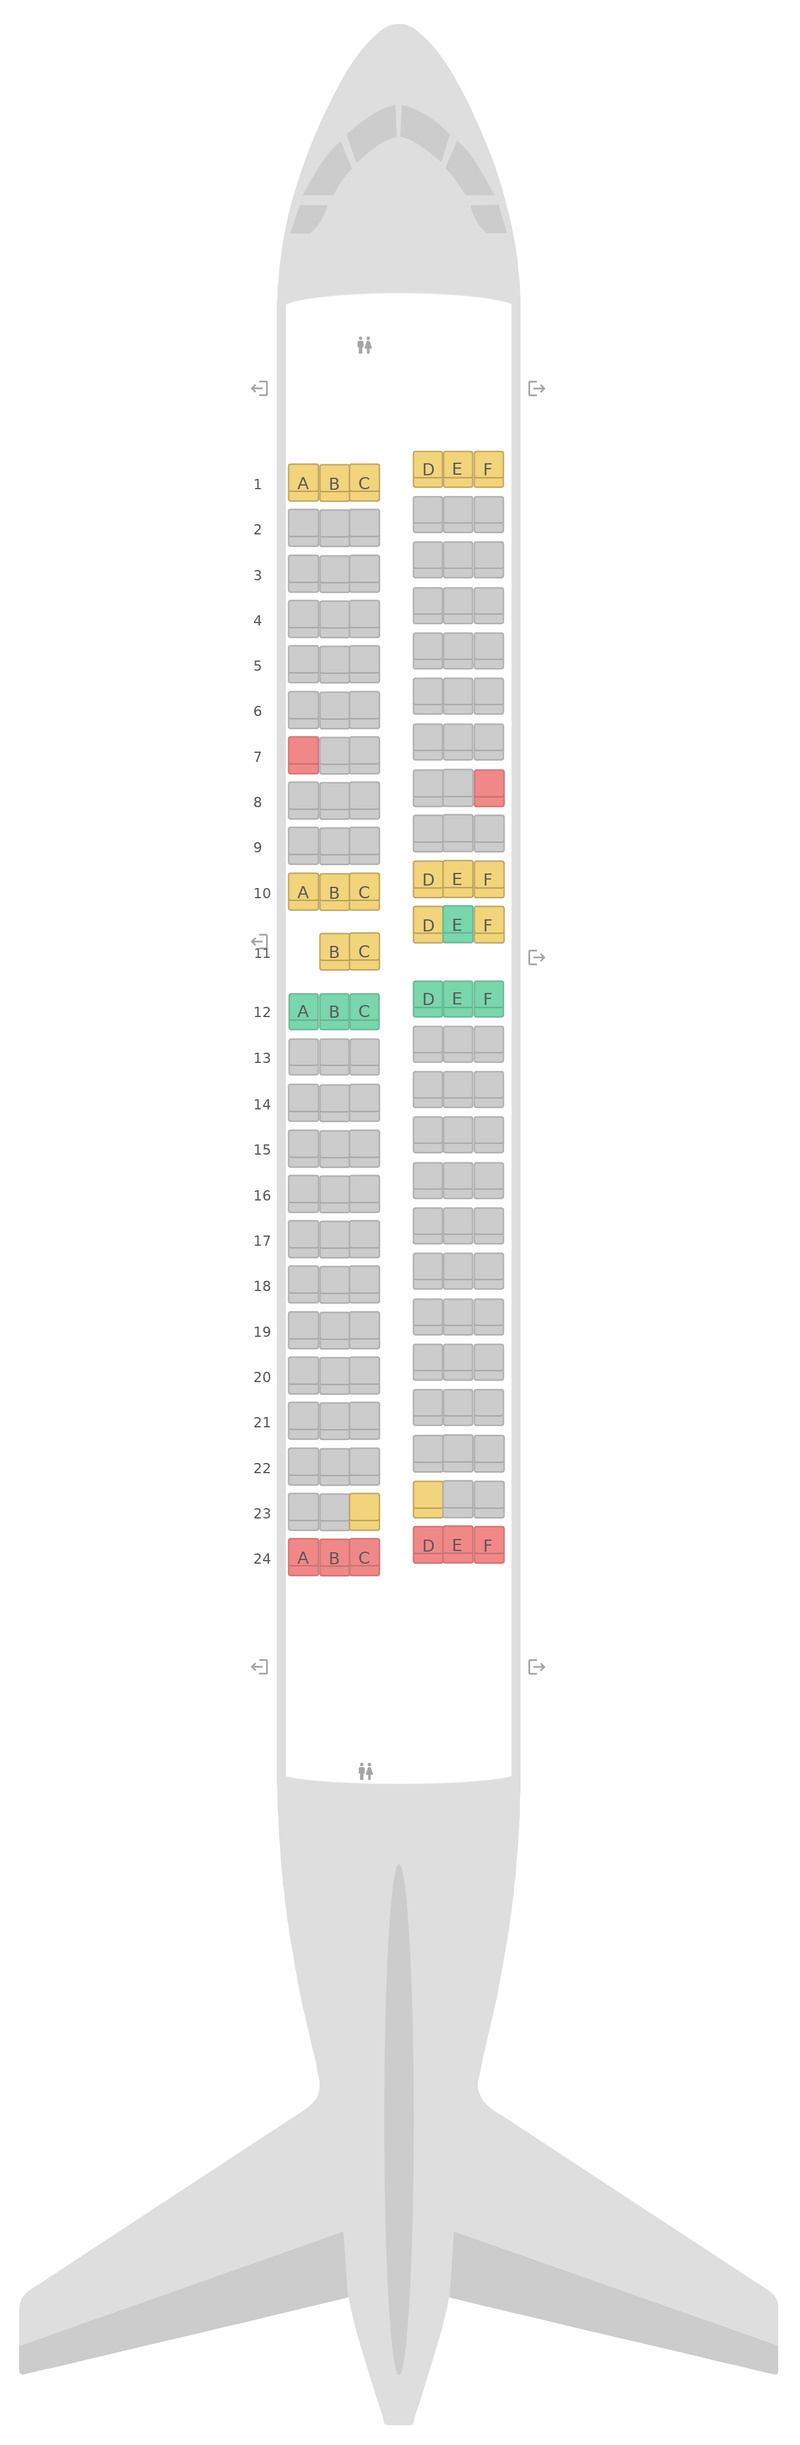 Seat Map Southwest Airlines Boeing 737-700